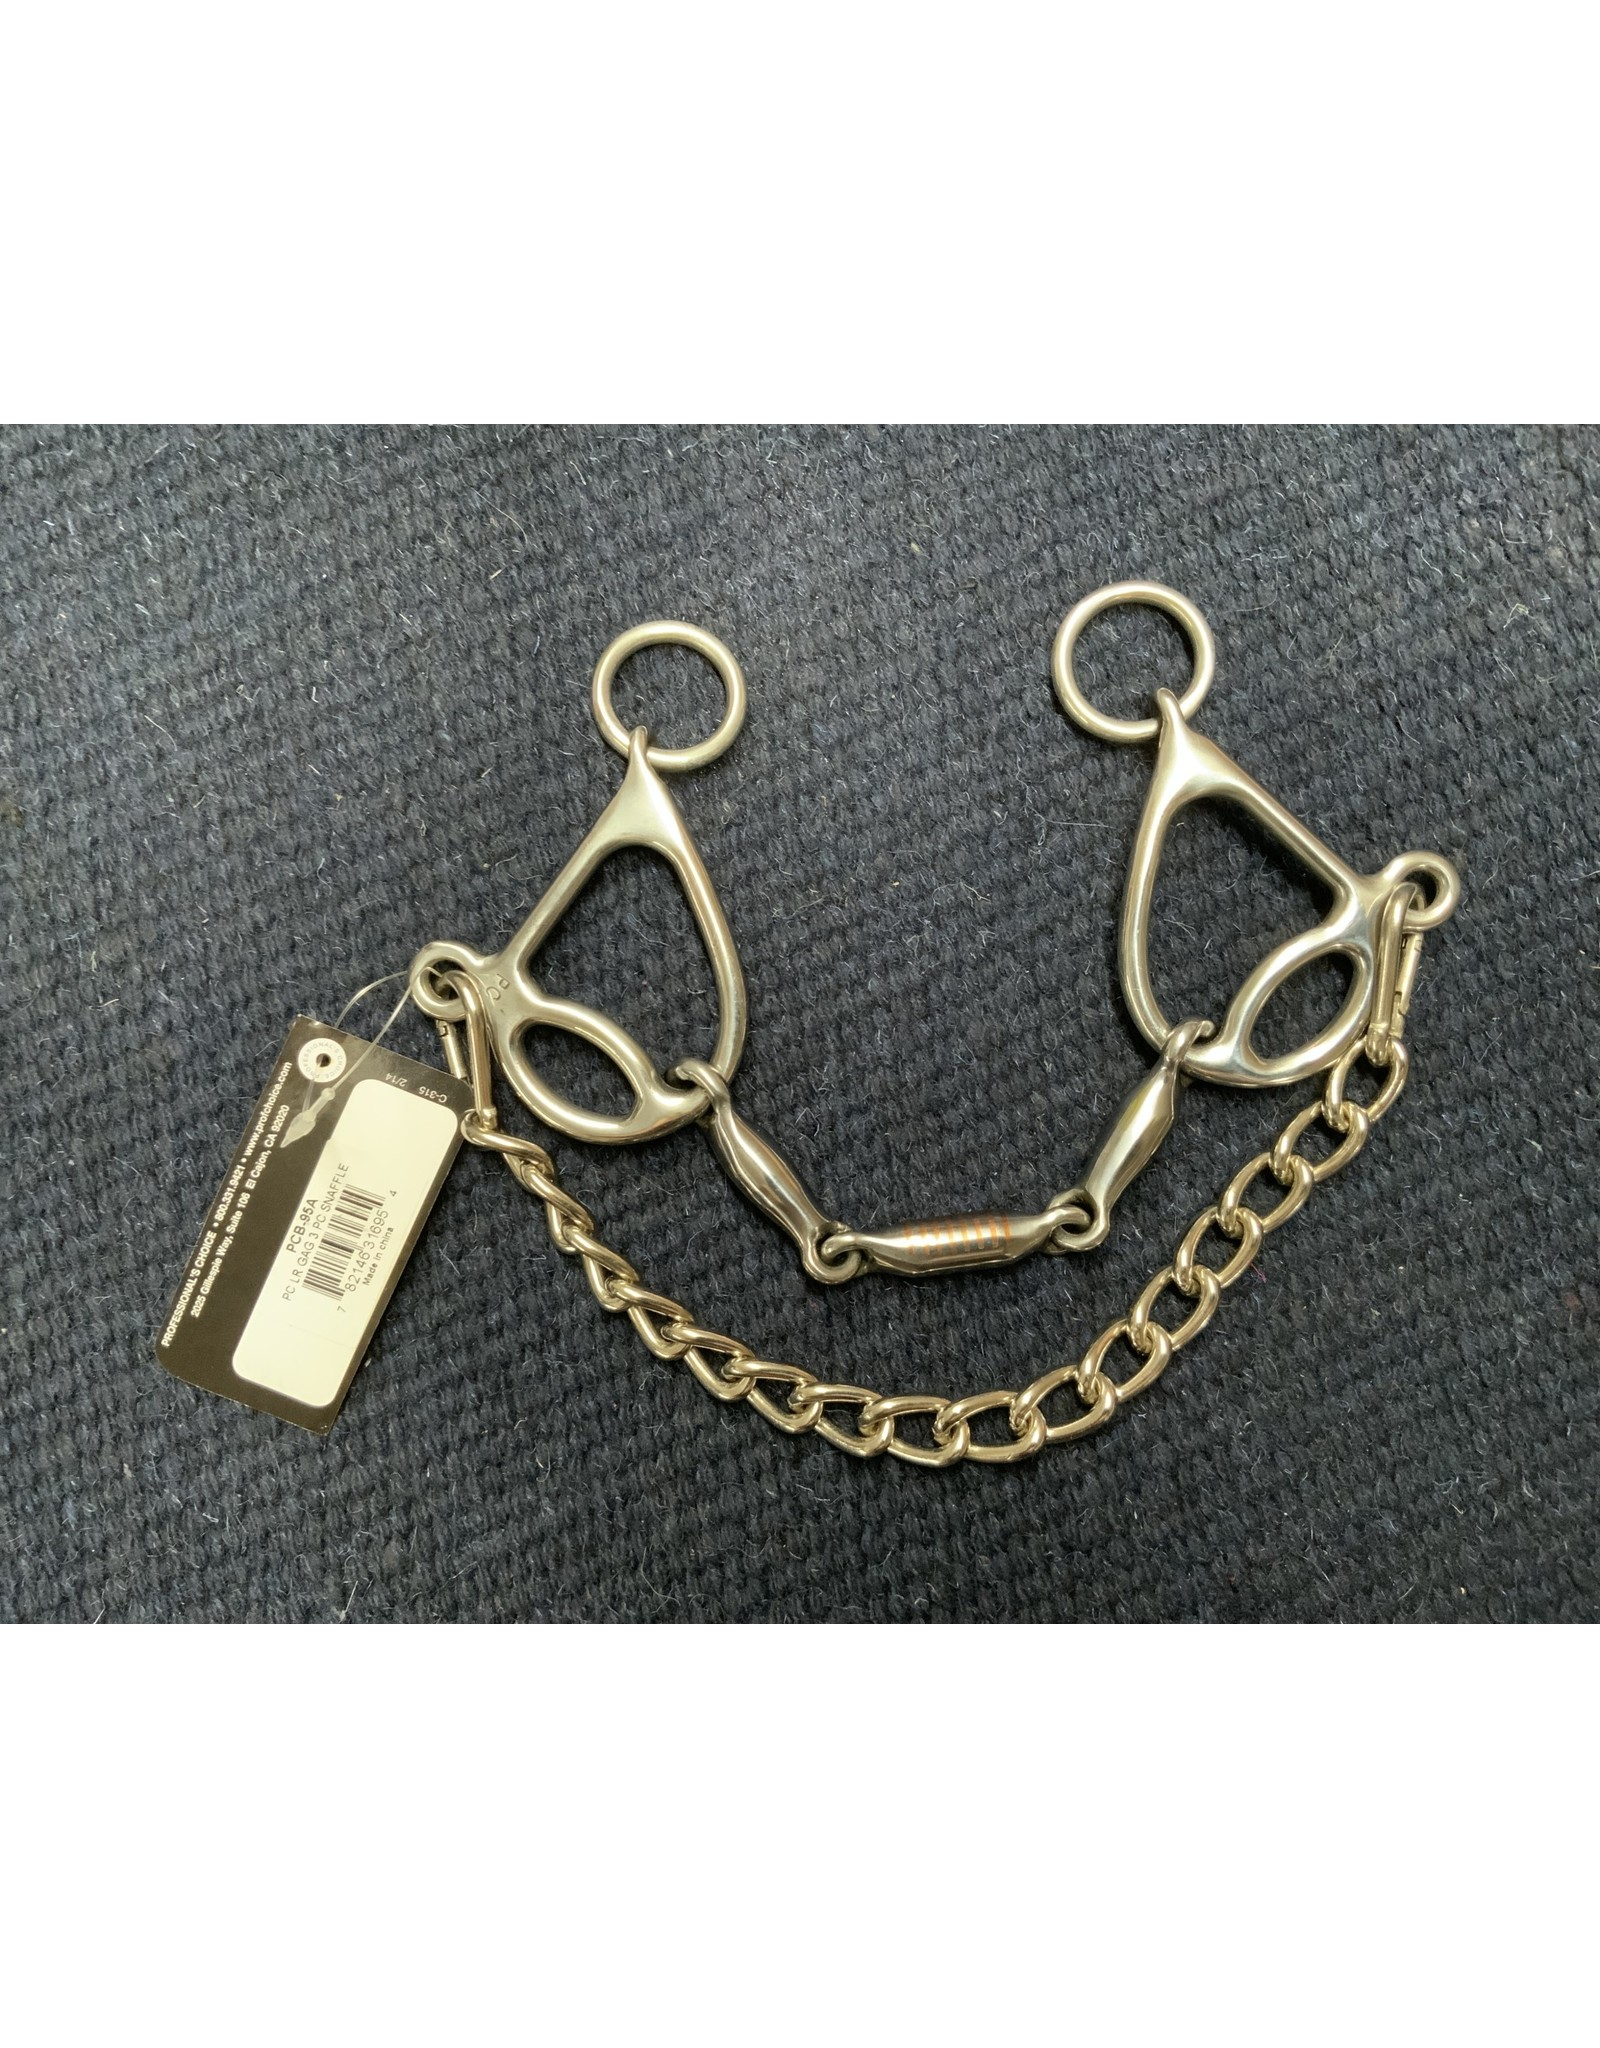 "BIT*Short Shank Loose Ring Gag Three Piece Snaffle Mouth 5.25"" Cheek 4.5 PCB-95A"